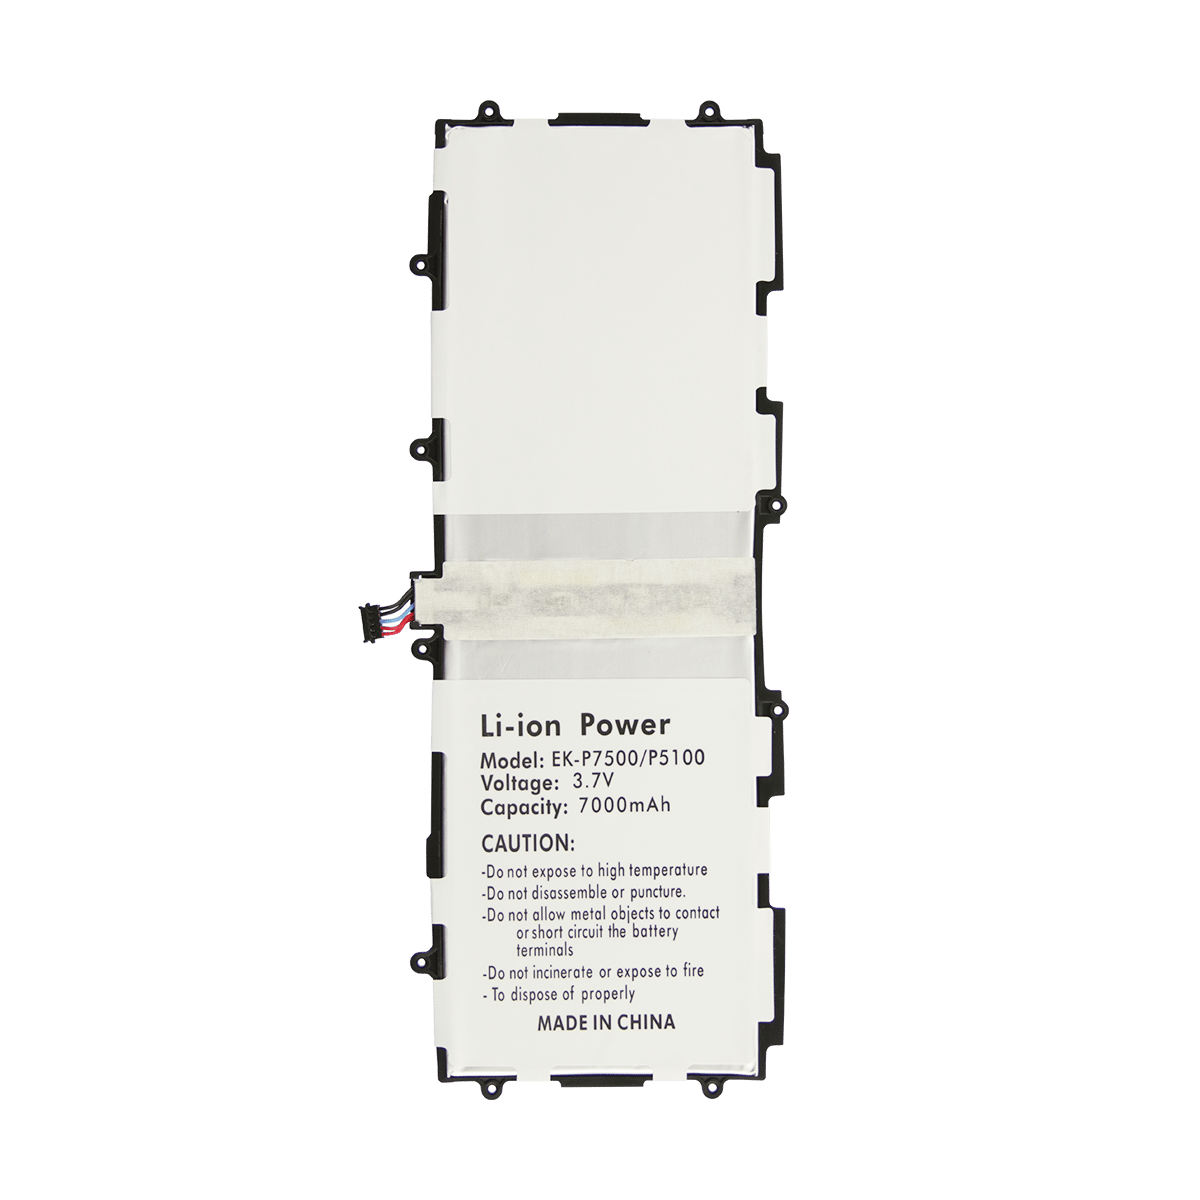 Samsung Galaxy Tab 10.1 P7500 Battery Replacement